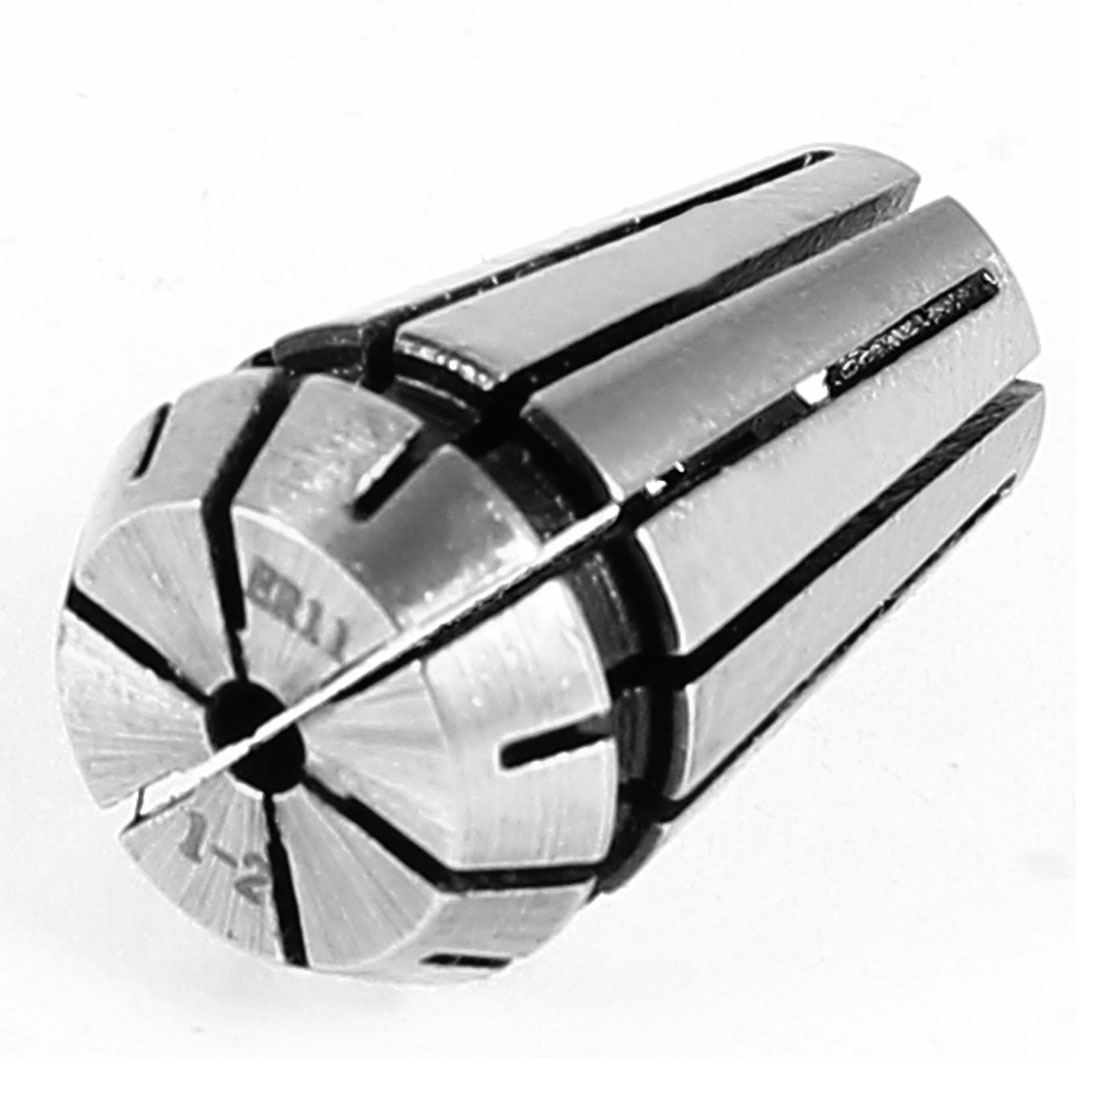 uxcell ER32 16mm Spring Collet Chuck for CNC Engraving Machine Lathe Milling Tool